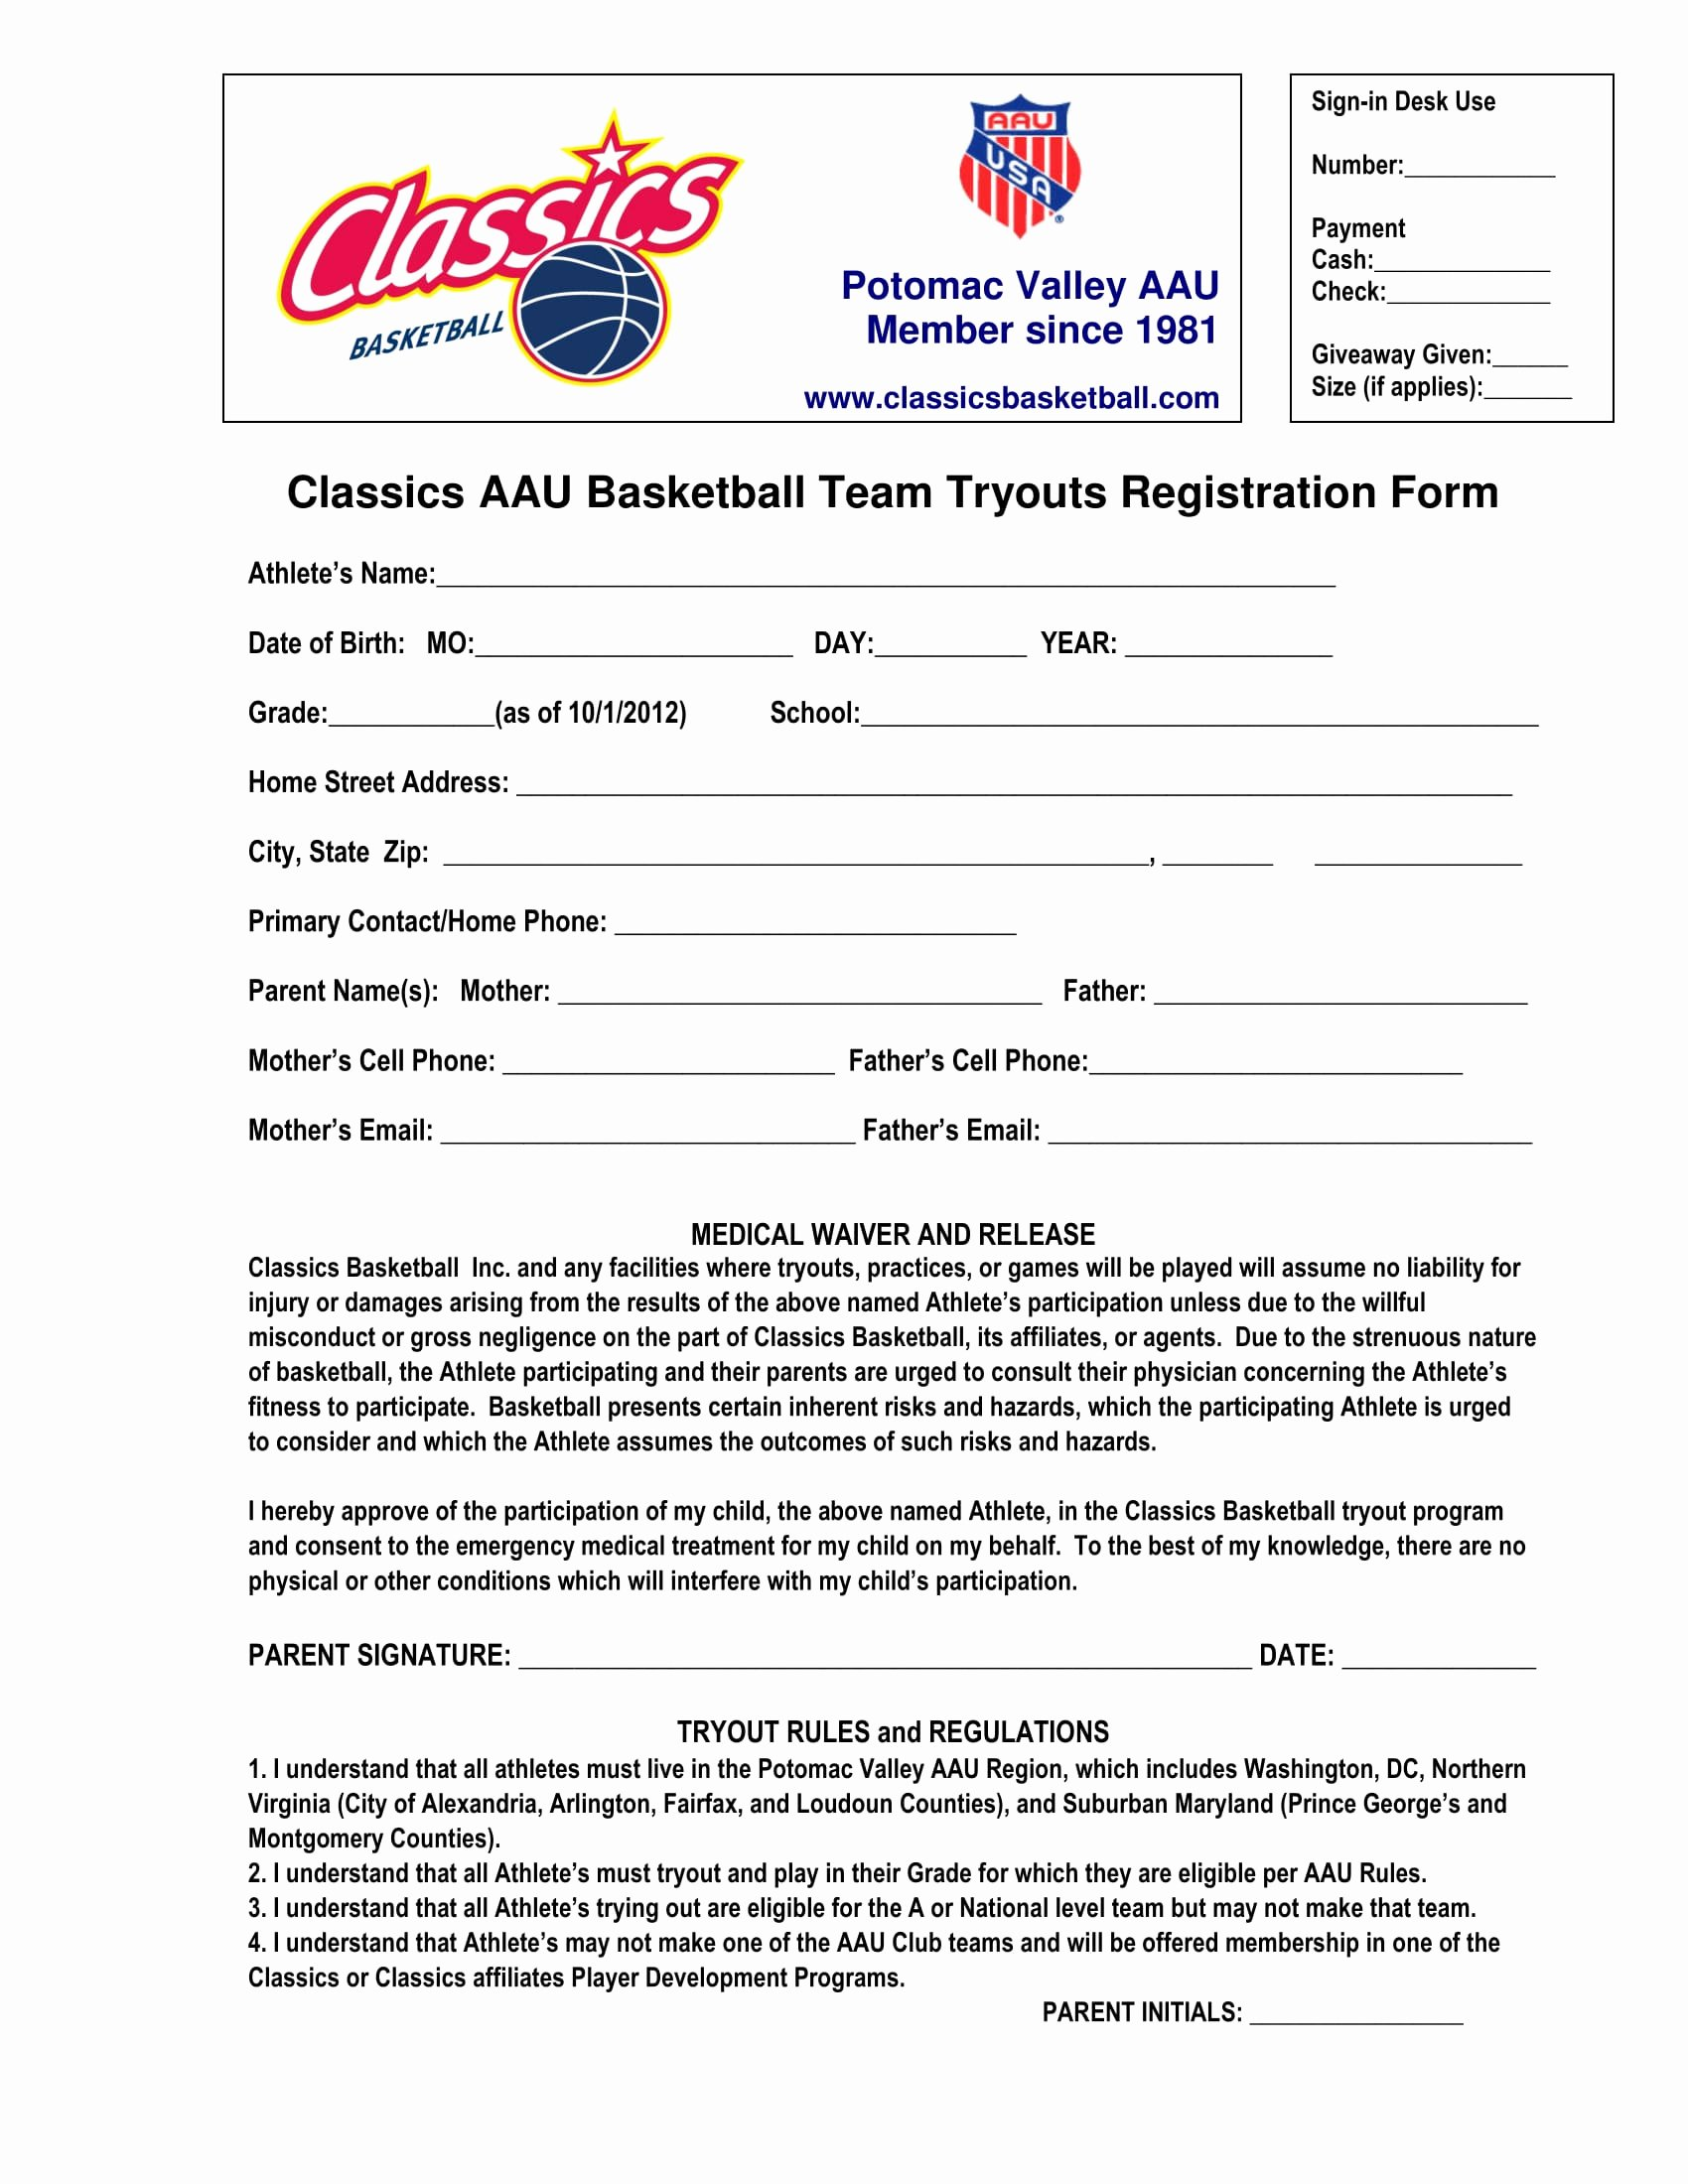 Basketball Tryout form Beautiful Free 9 Basketball Registration form Samples